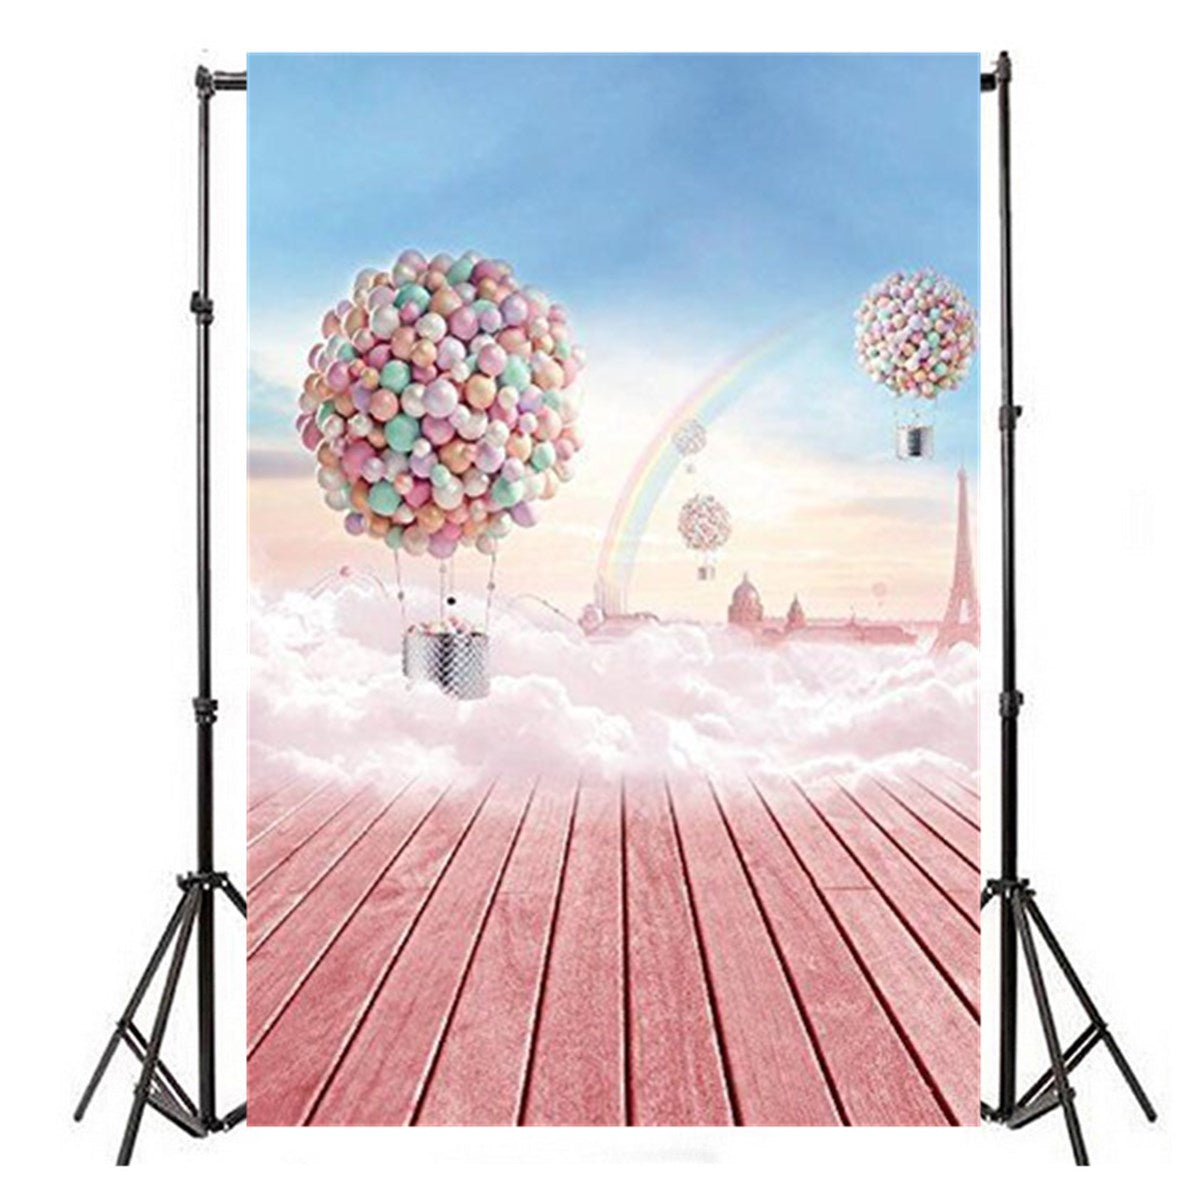 Backdrop Hot-air Photography Vinyl Backdrop Studio Background 2.1m x 1.5m